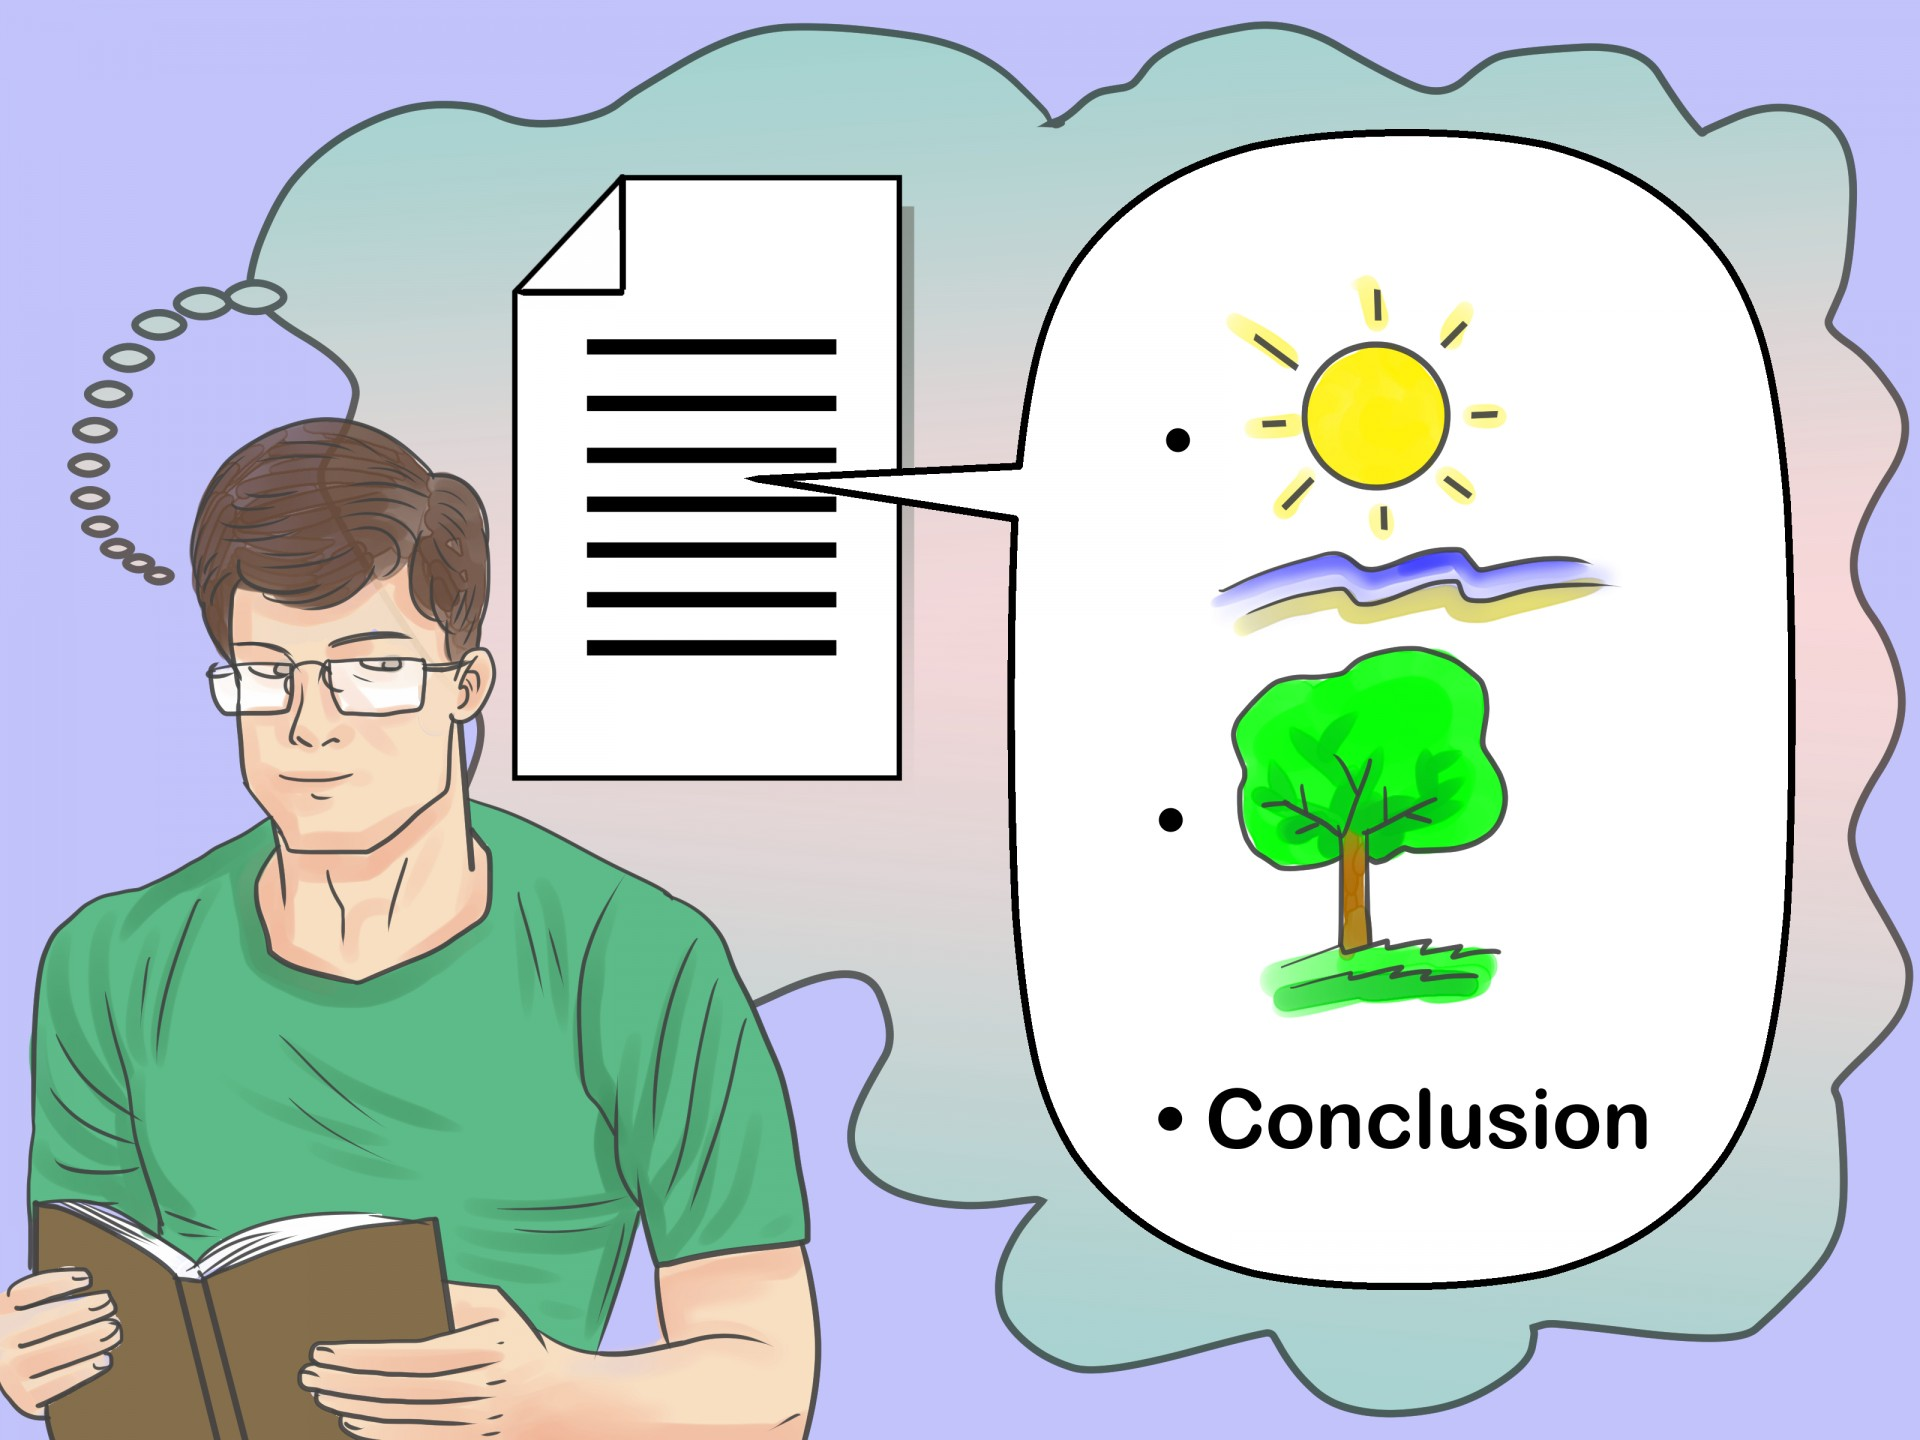 010 Essay Example Write Compare And Contrast Step Version How Striking To Block Method Conclusion 1920